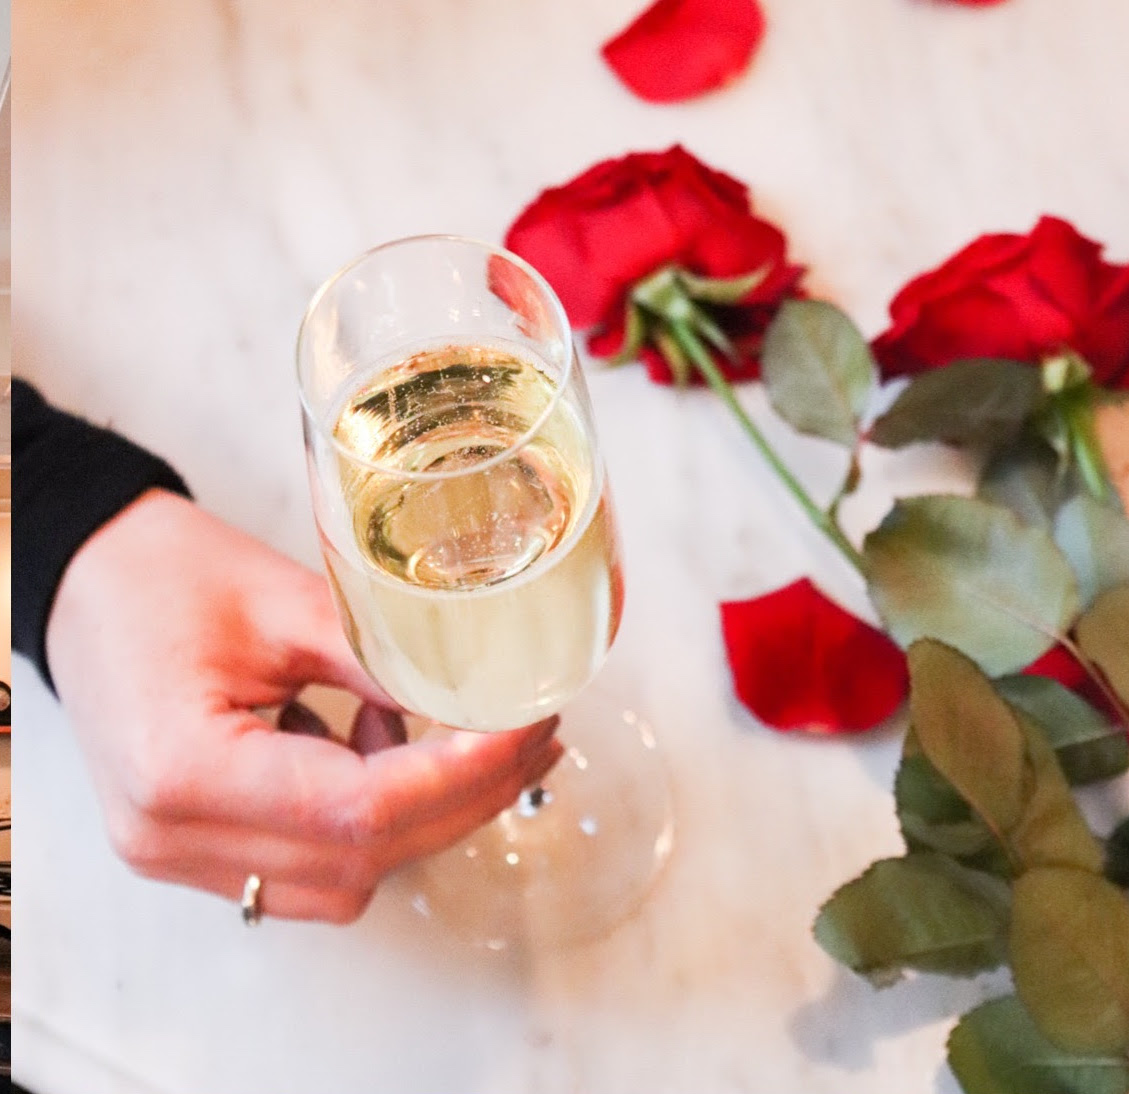 Treat your Valentine to Homer St. Cafe and Bar's exclusive three-course menu